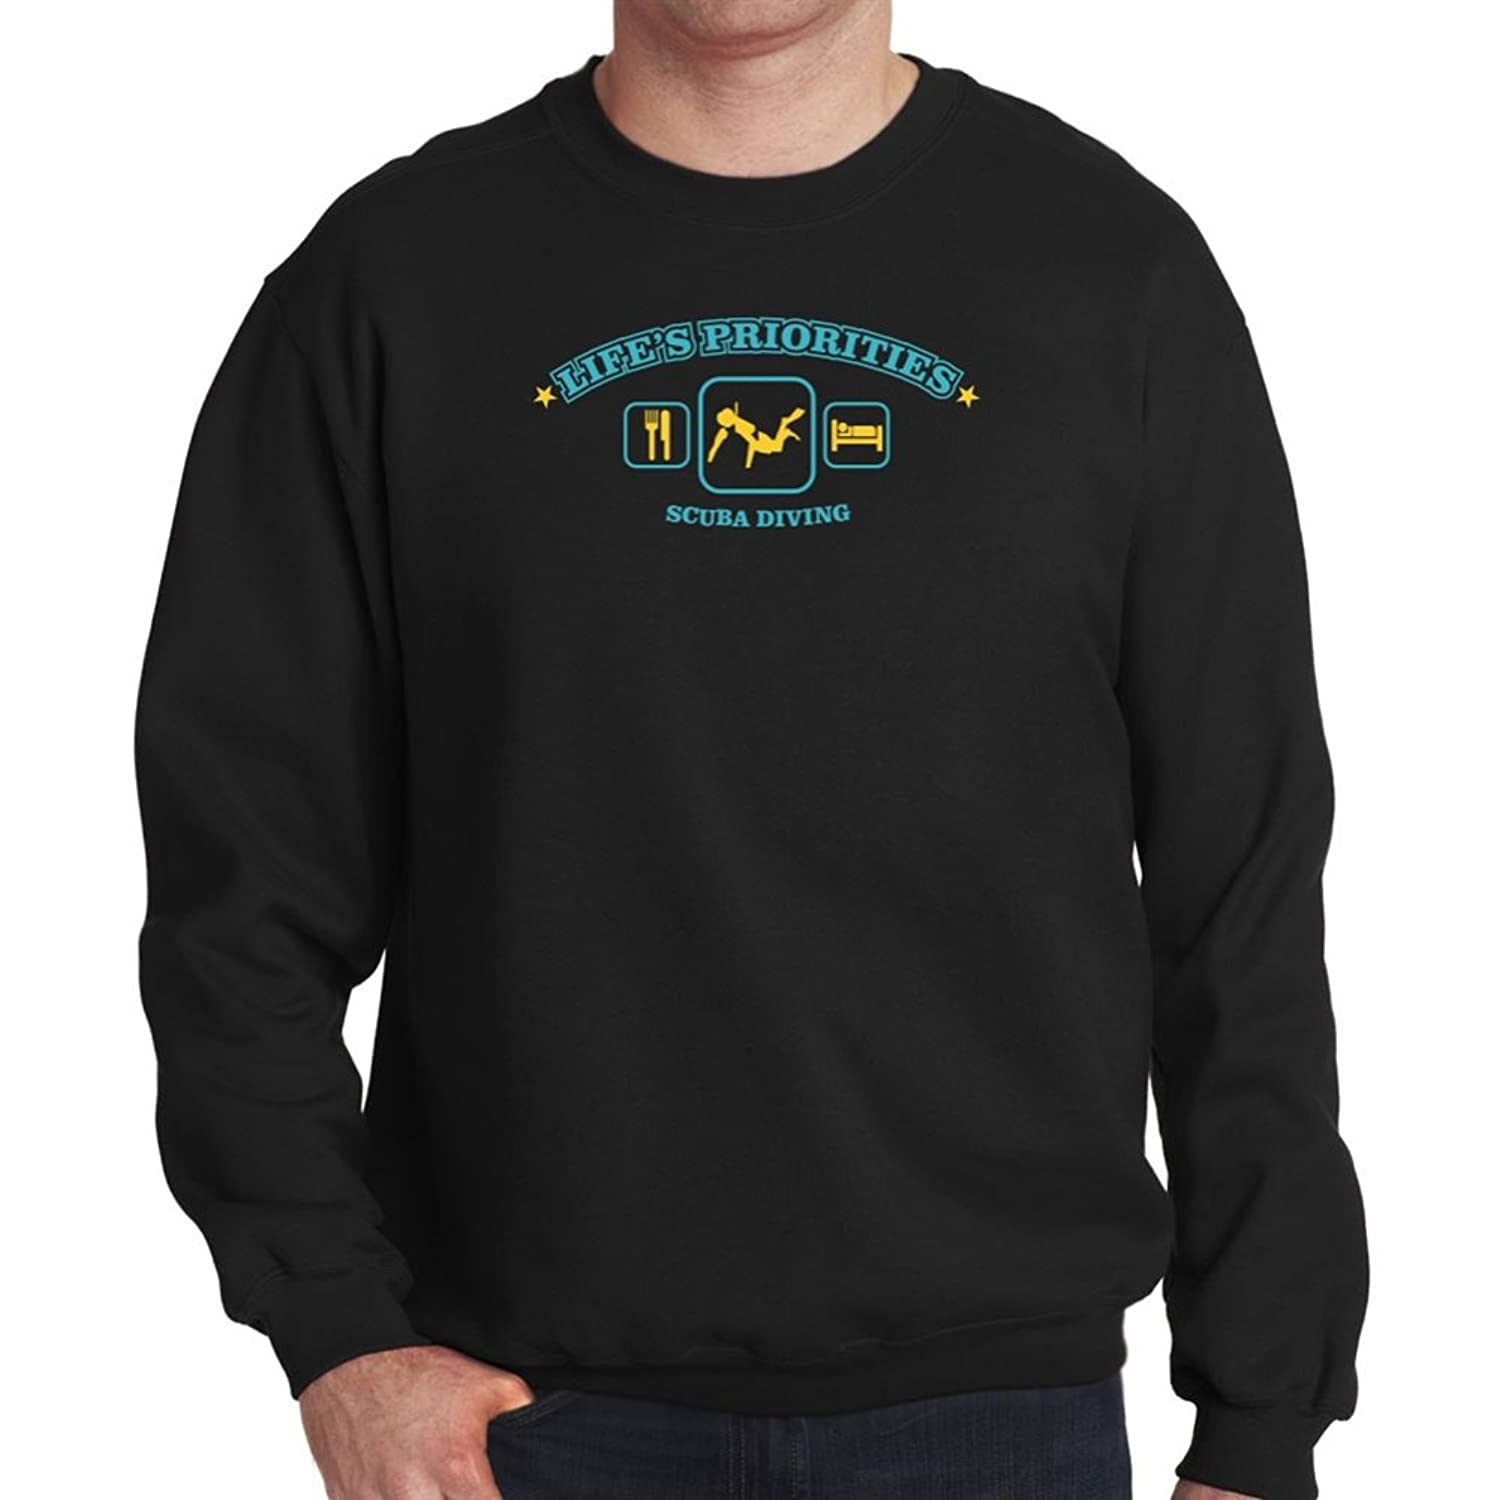 Life's priorities Scuba Diving Sweatshirt